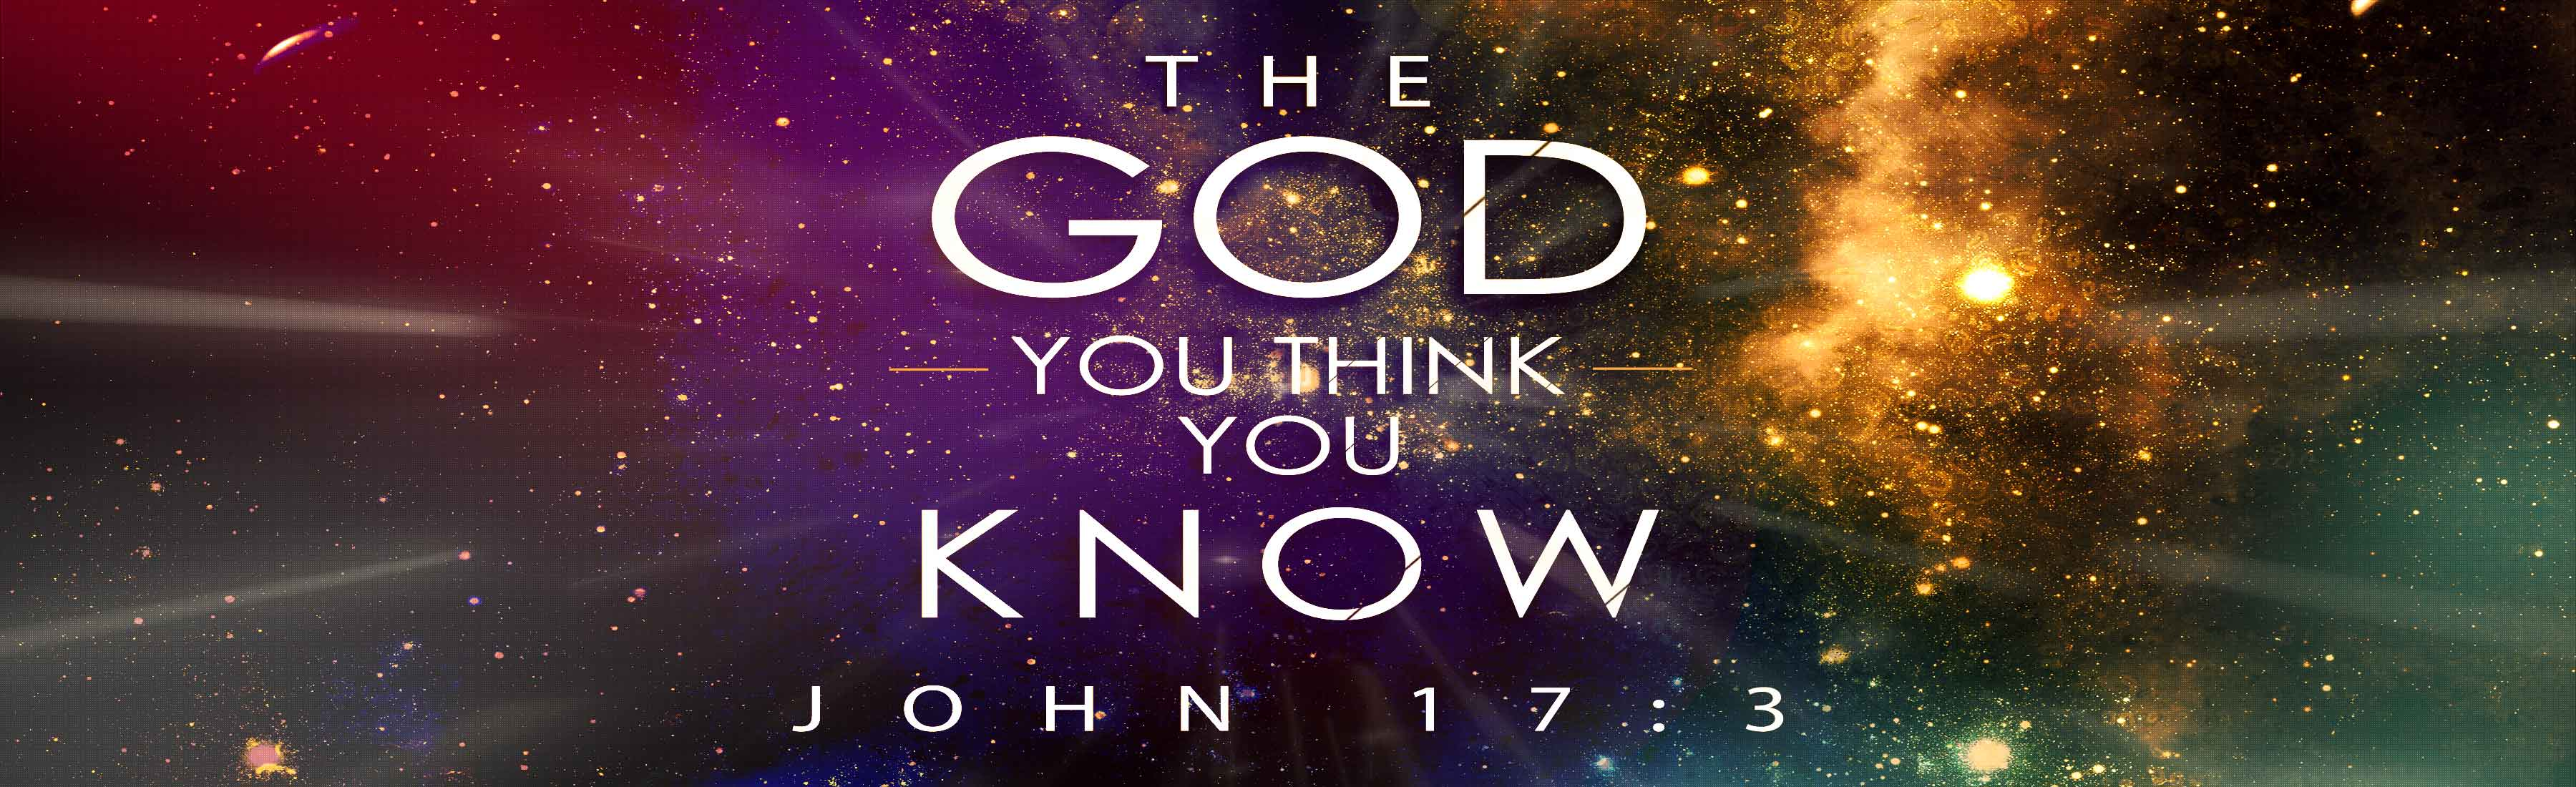 The-God-You-Think-You-Know-Title-3600x1100